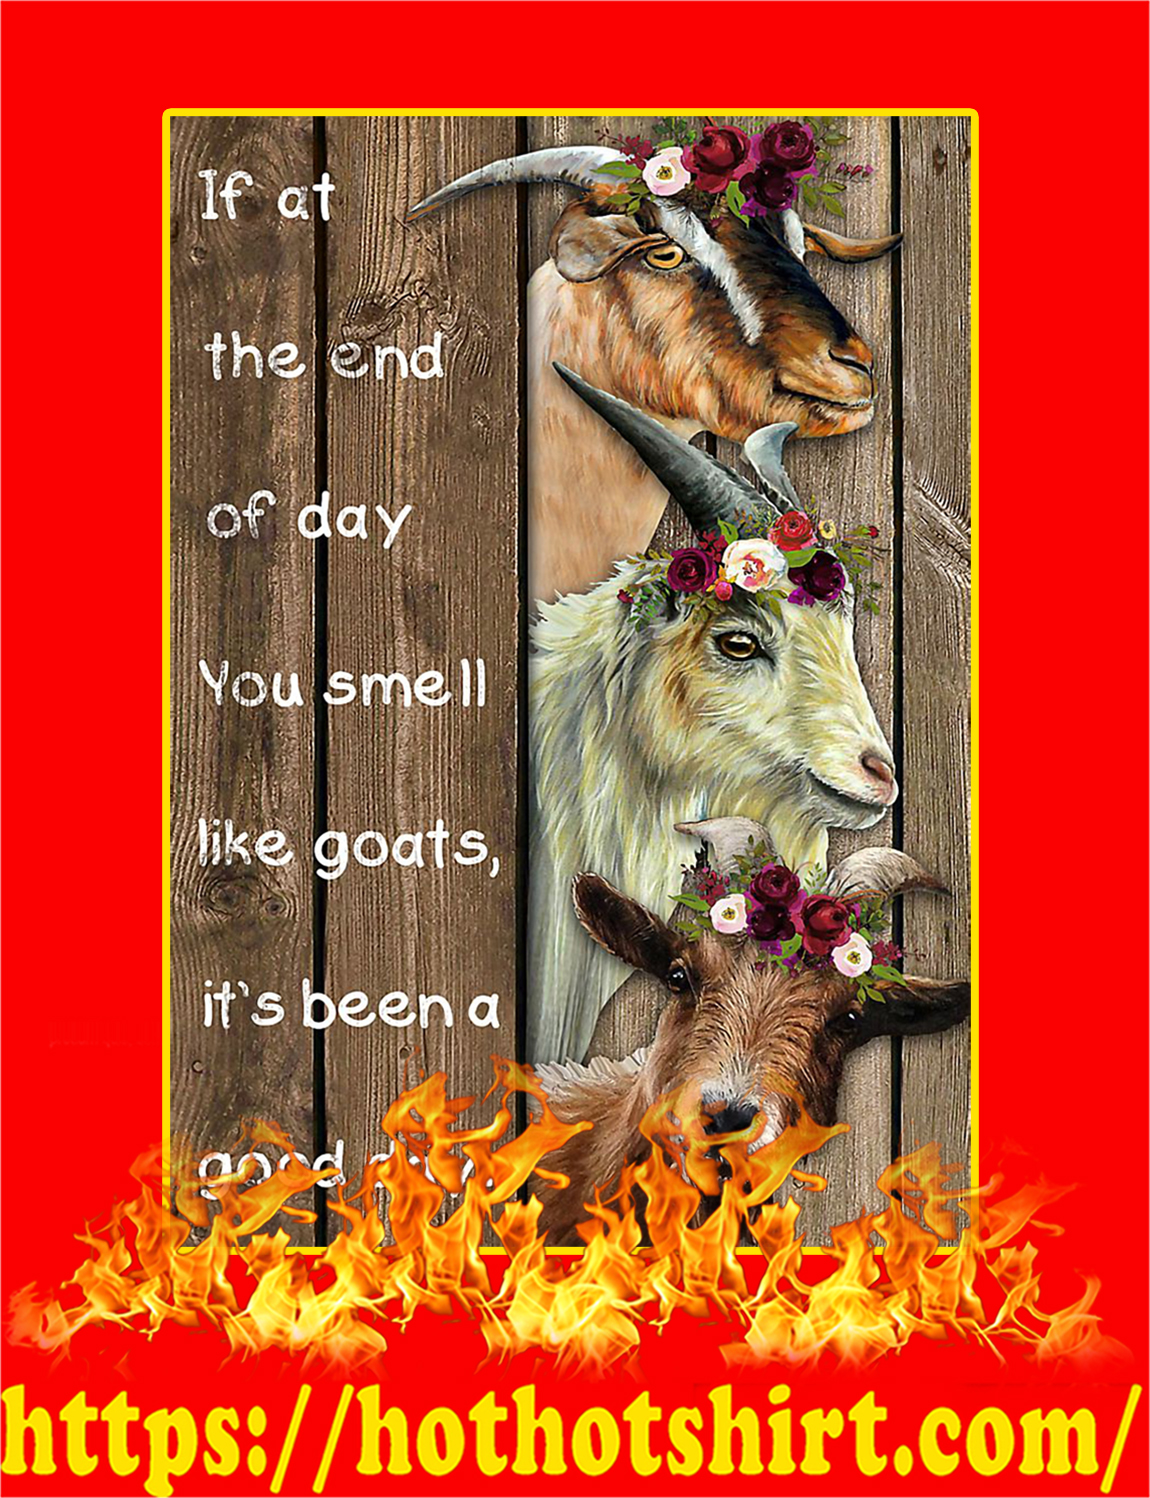 If At The End Of Day You Smell Like Goats Poster - A4